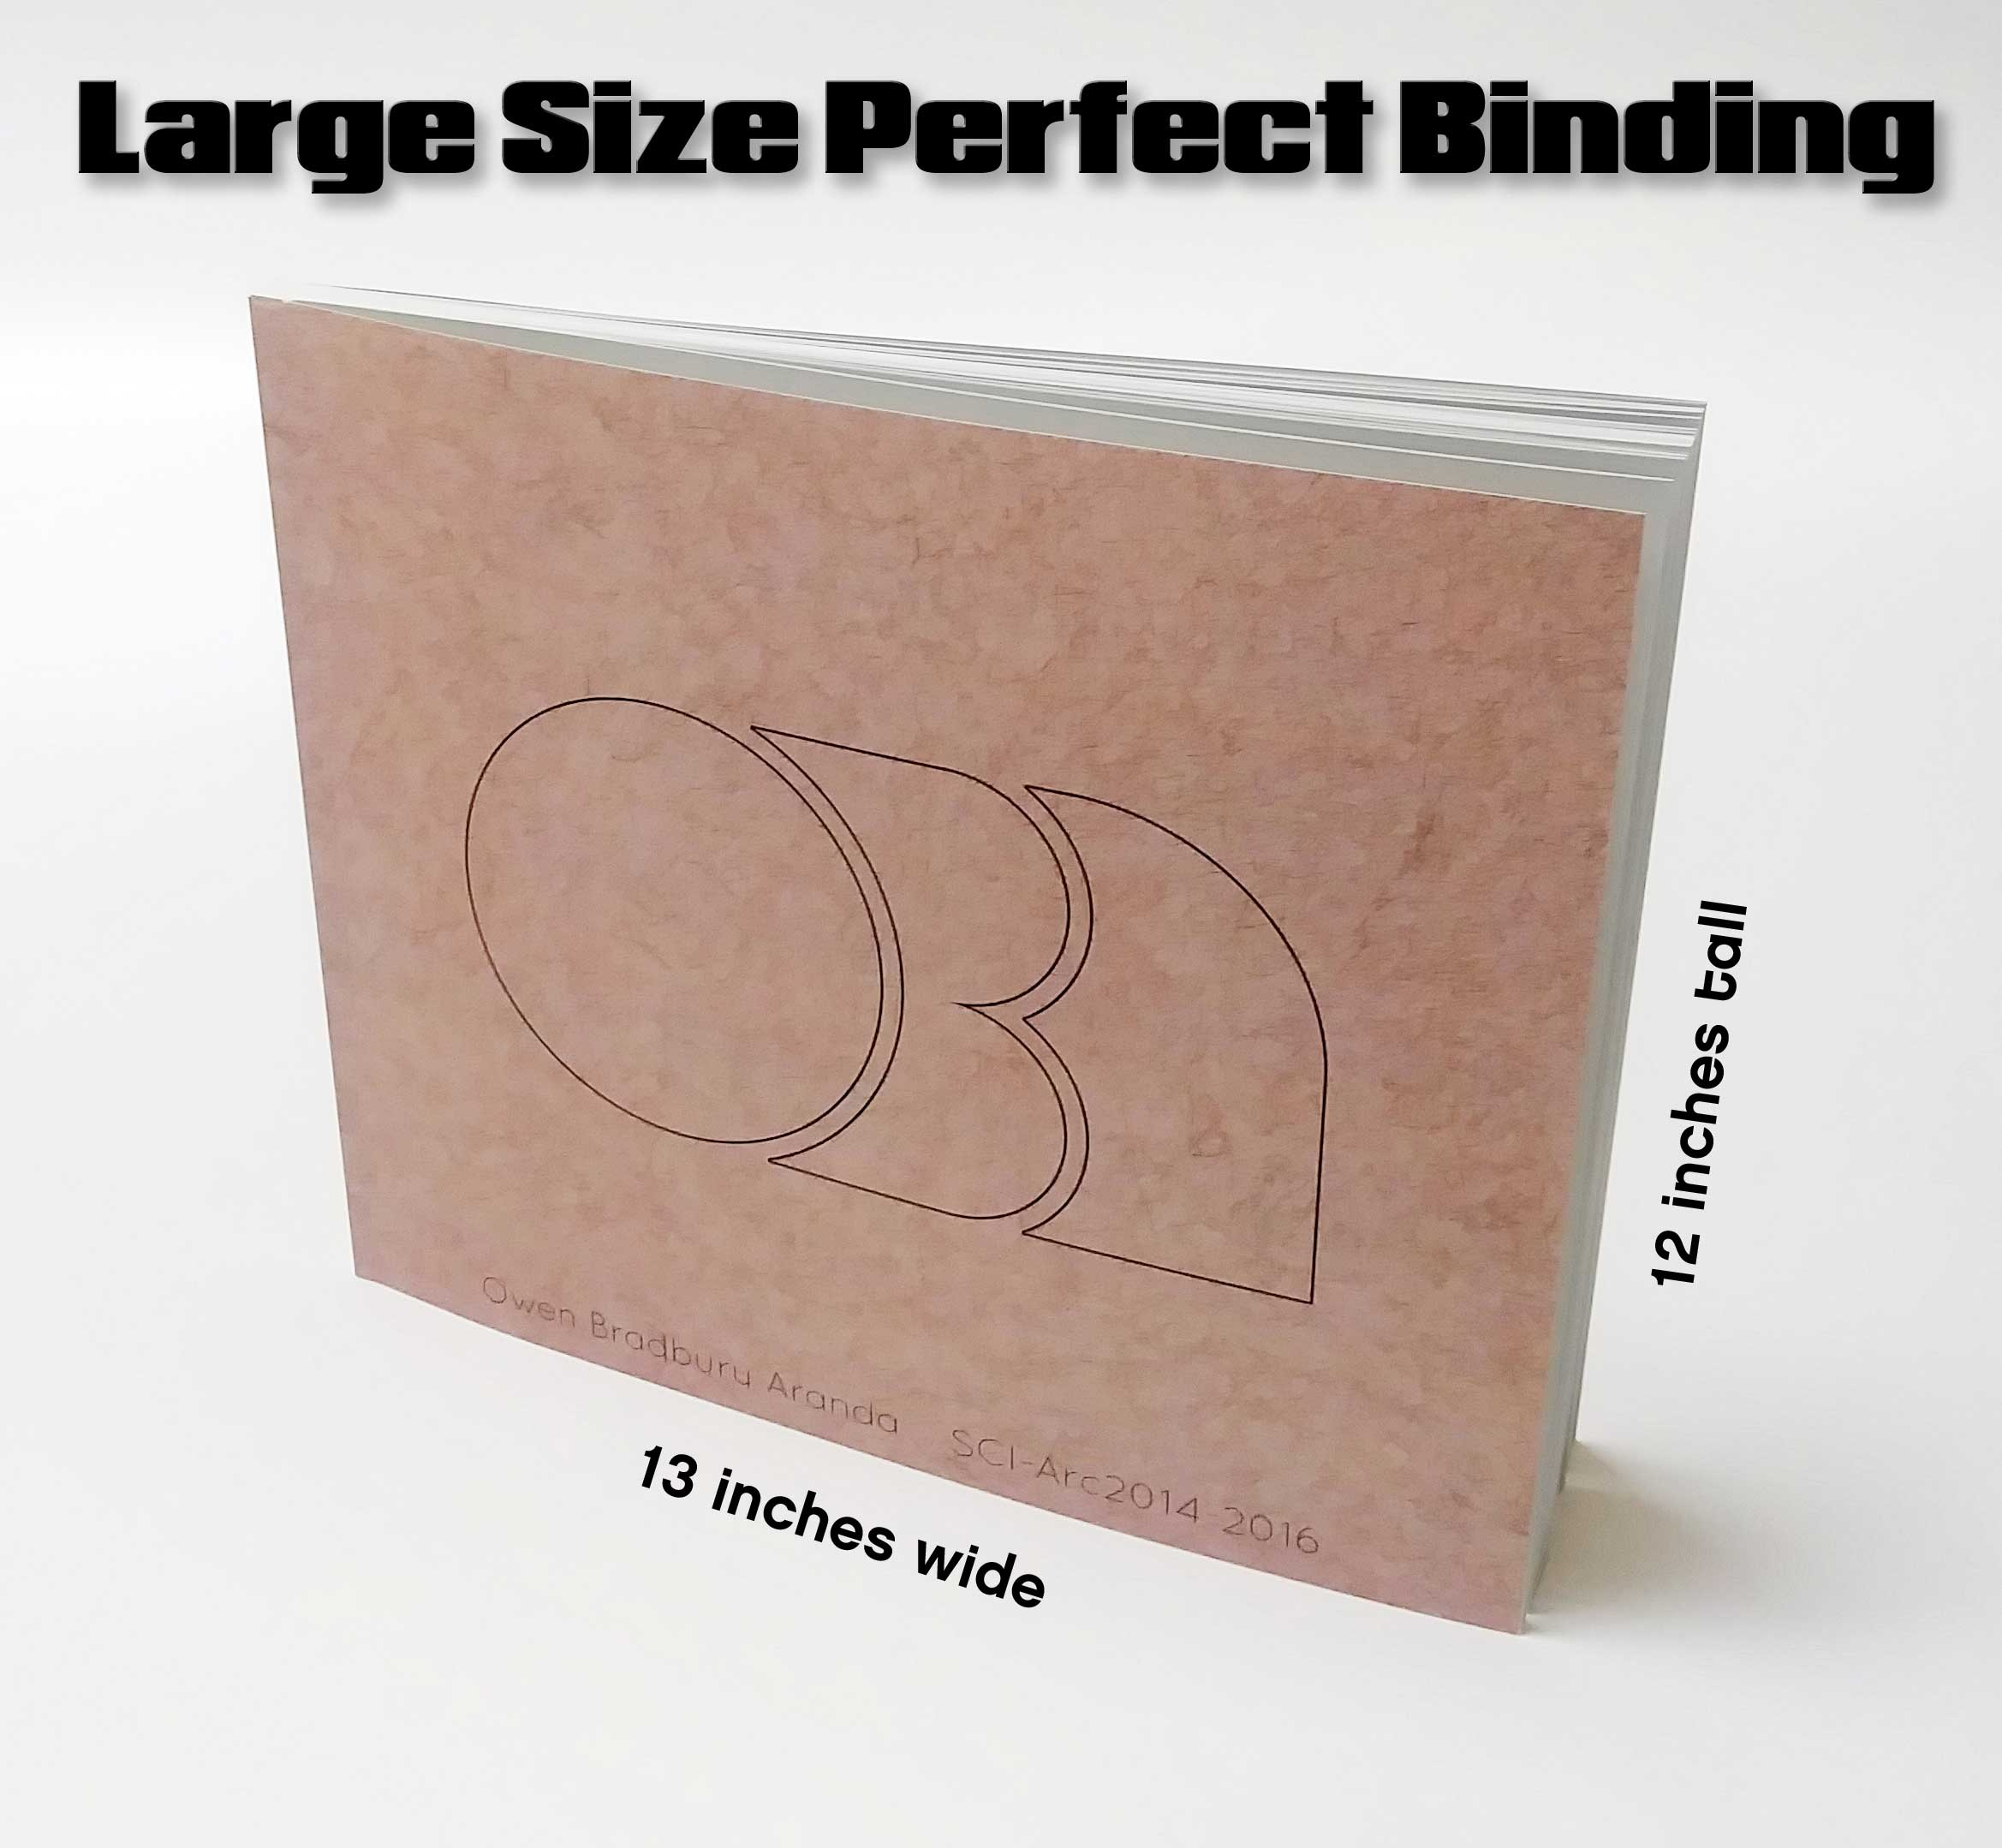 Landscape perfect bound short run options from SLB Printing in Los Angeles